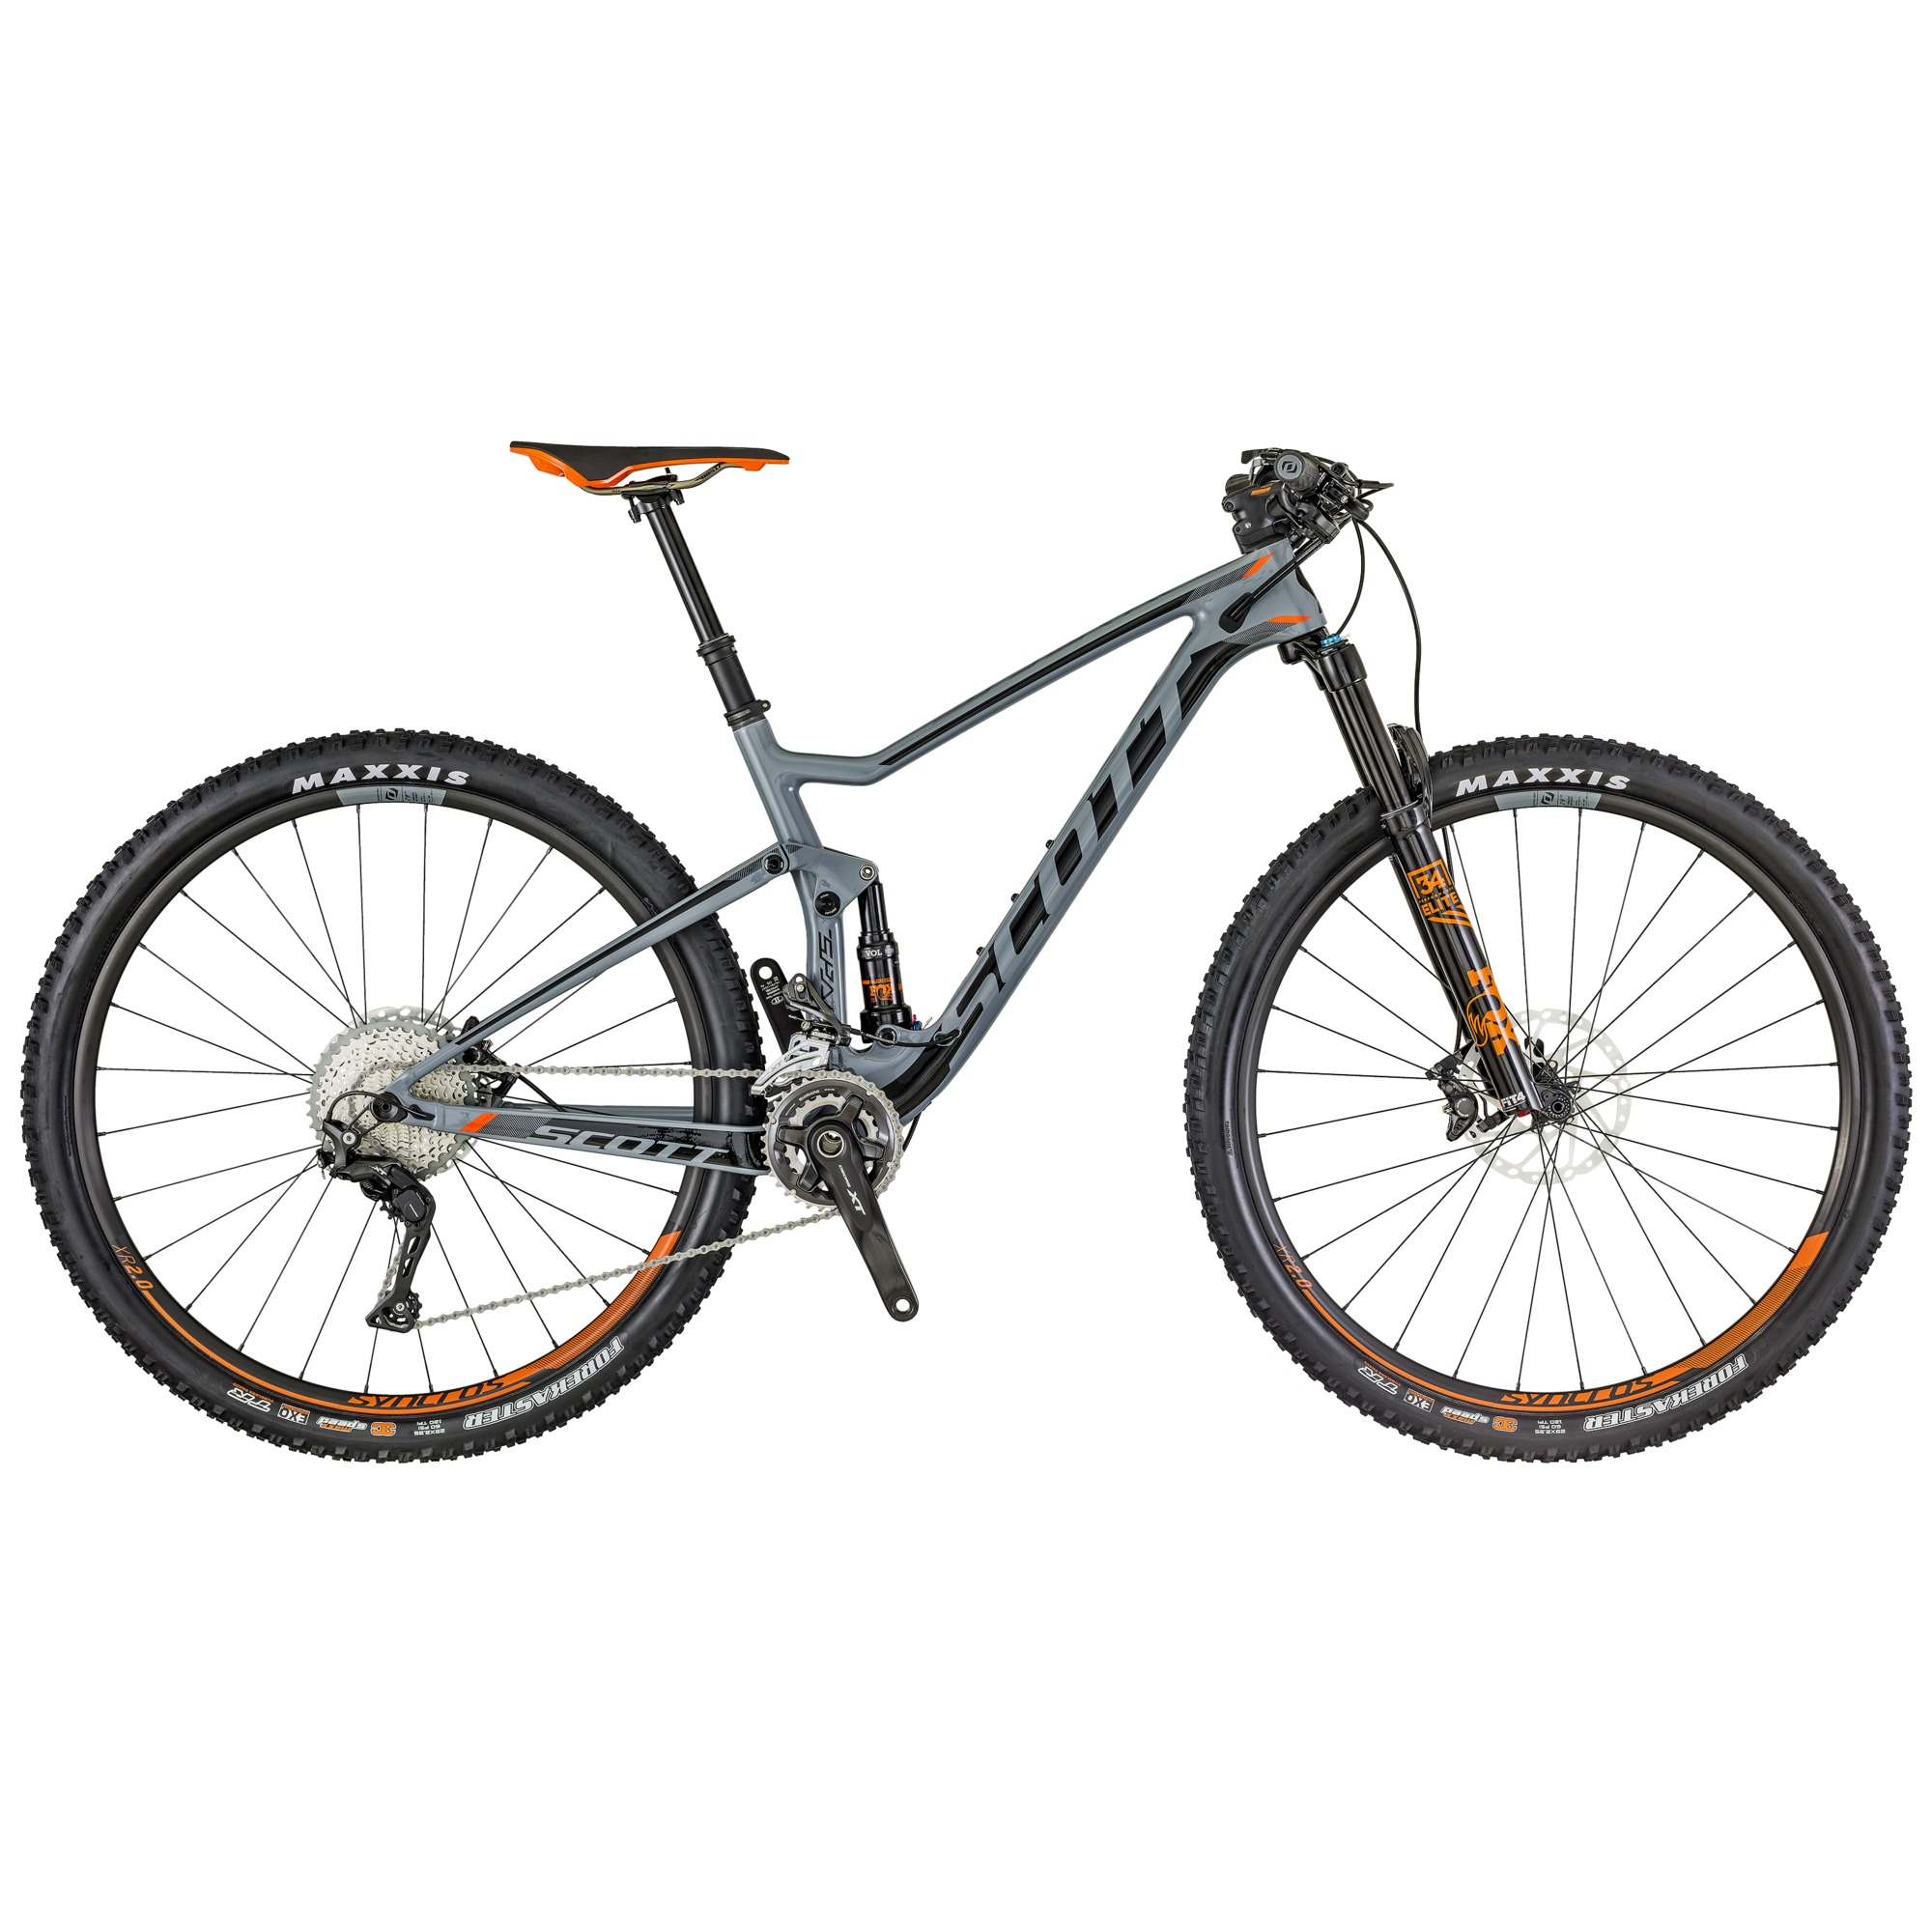 Road Bicycle - Find China Manufacturers Of Road Bicycle